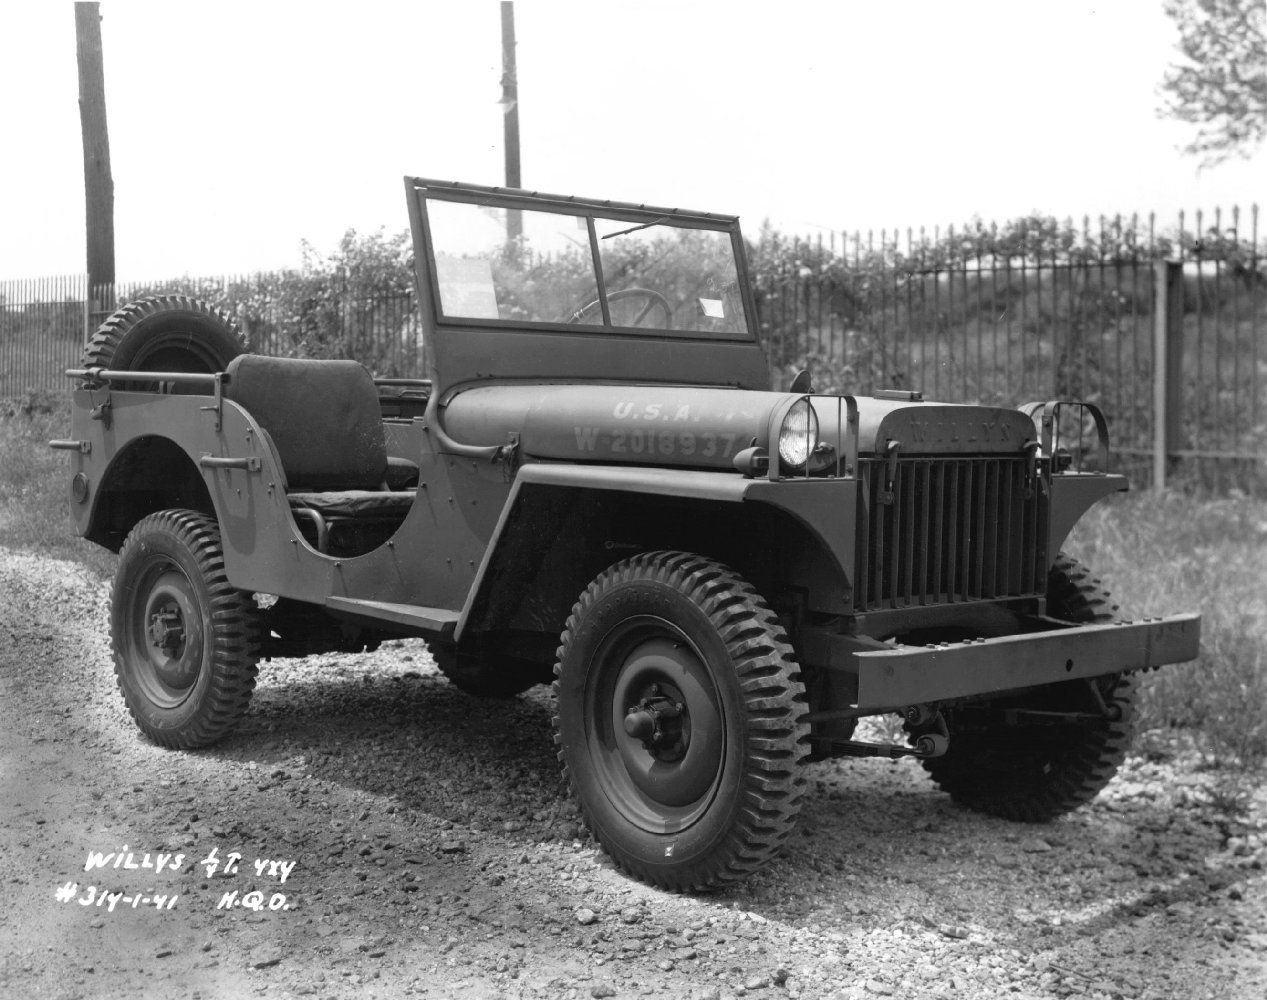 Pin By Devon Burt On Vehicles Willys Jeep Willys Willys Mb